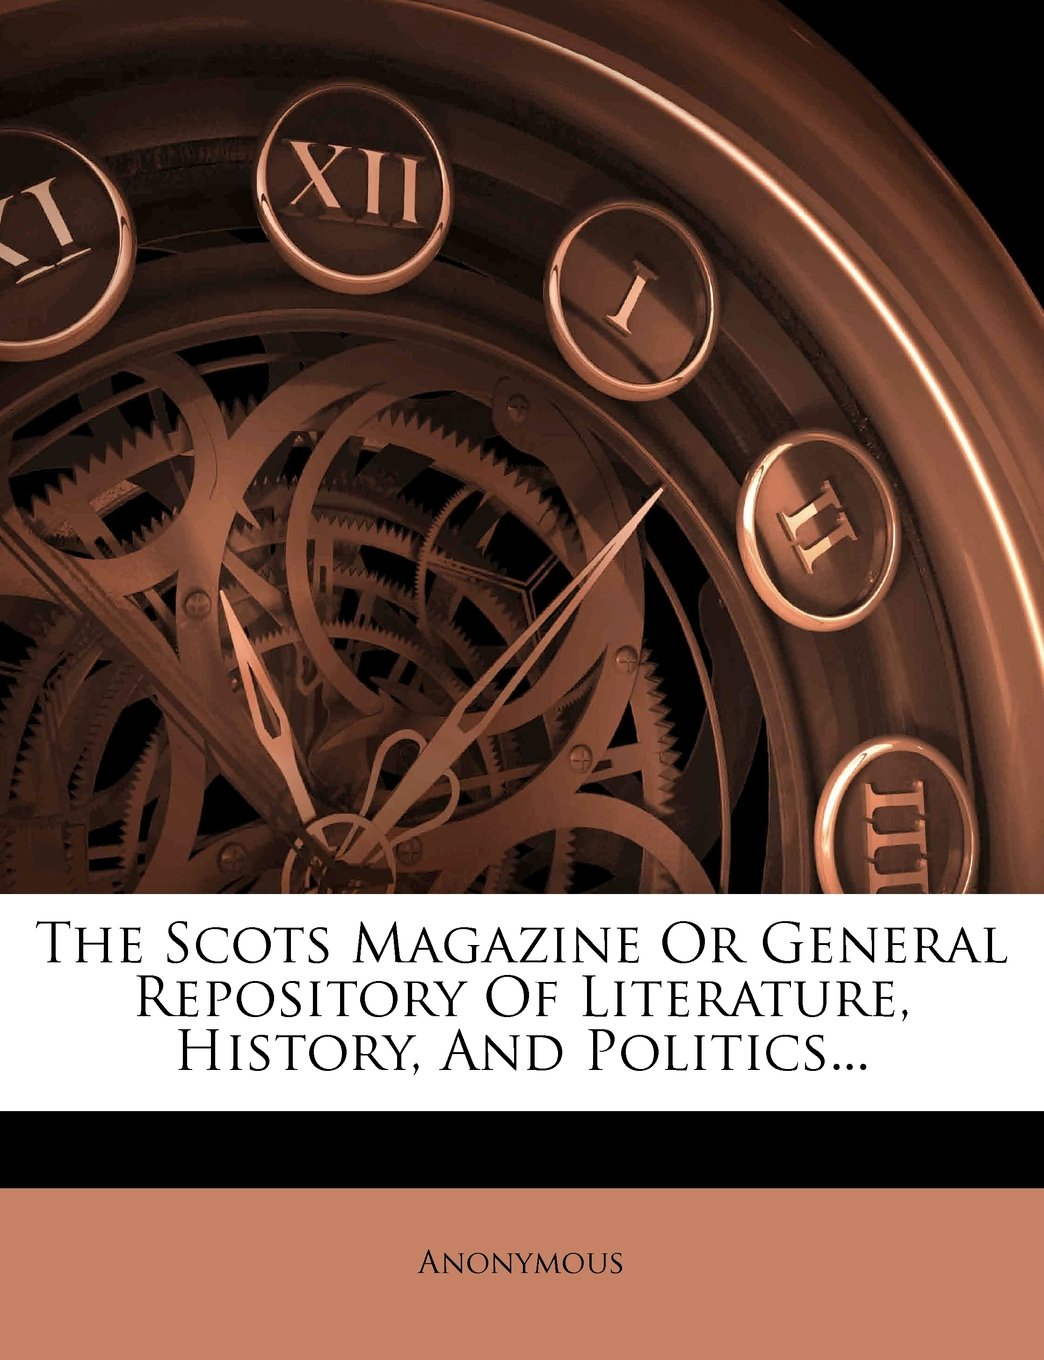 The Scots Magazine Or General Repository Of Literature, History, And Politics... ebook